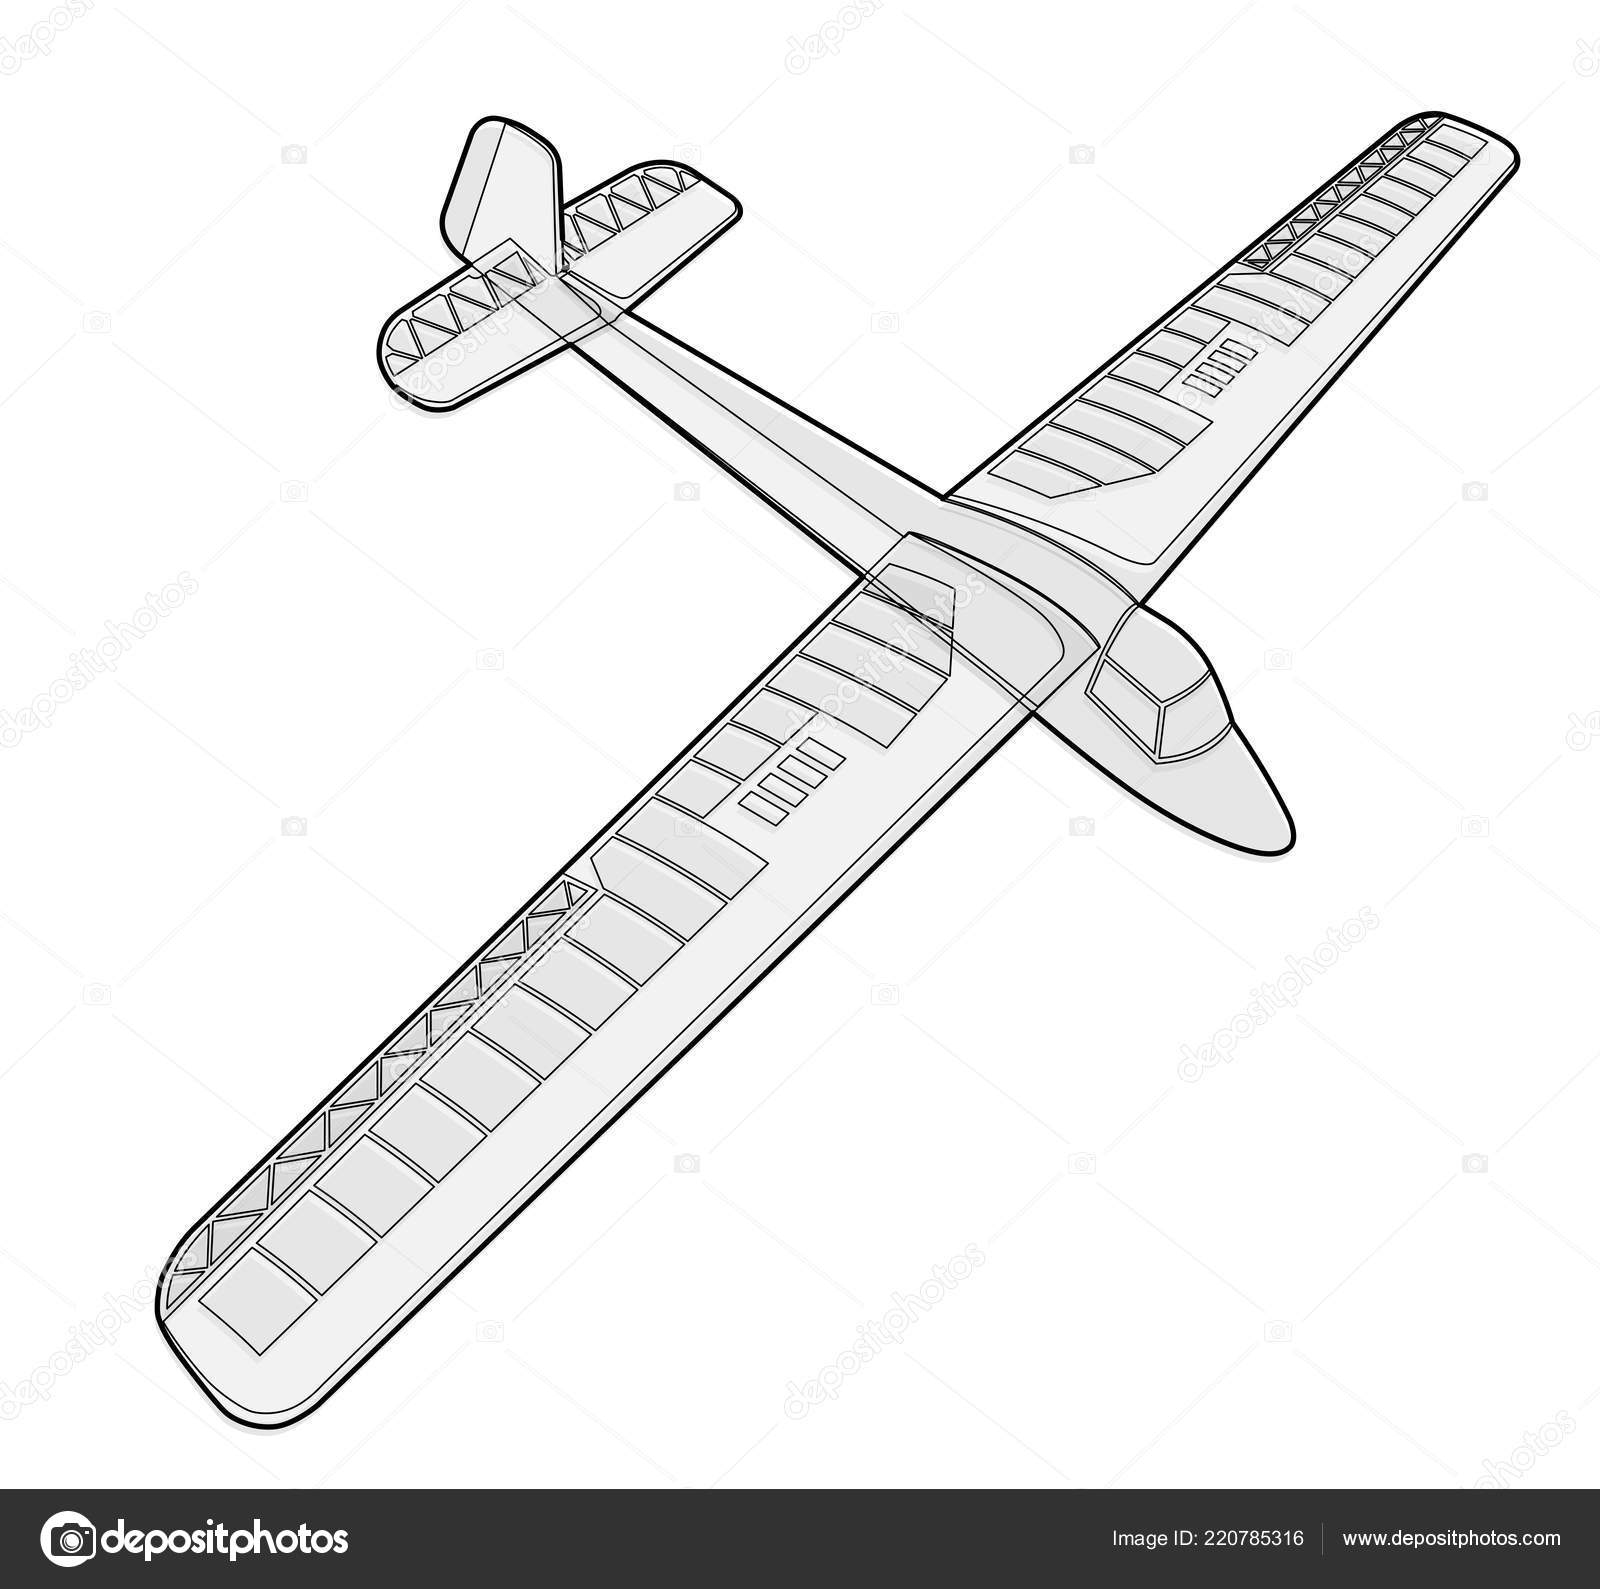 Model Glider Ground Plan Beautiful Subtle Airplane Balsa